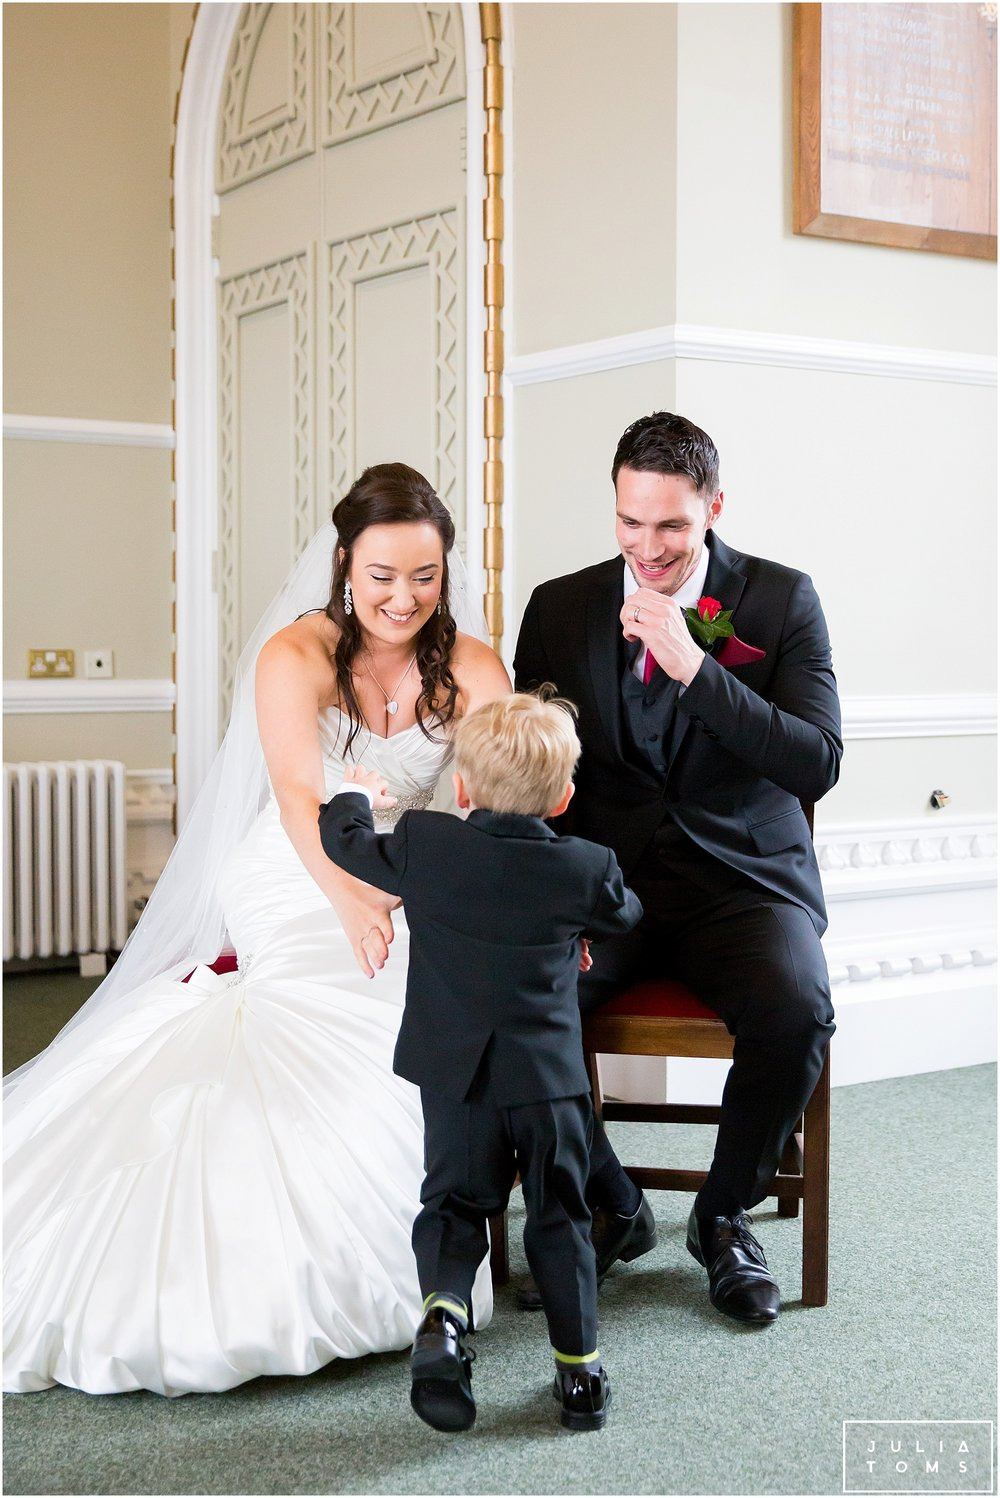 arundel_wedding_photographer_019.jpg